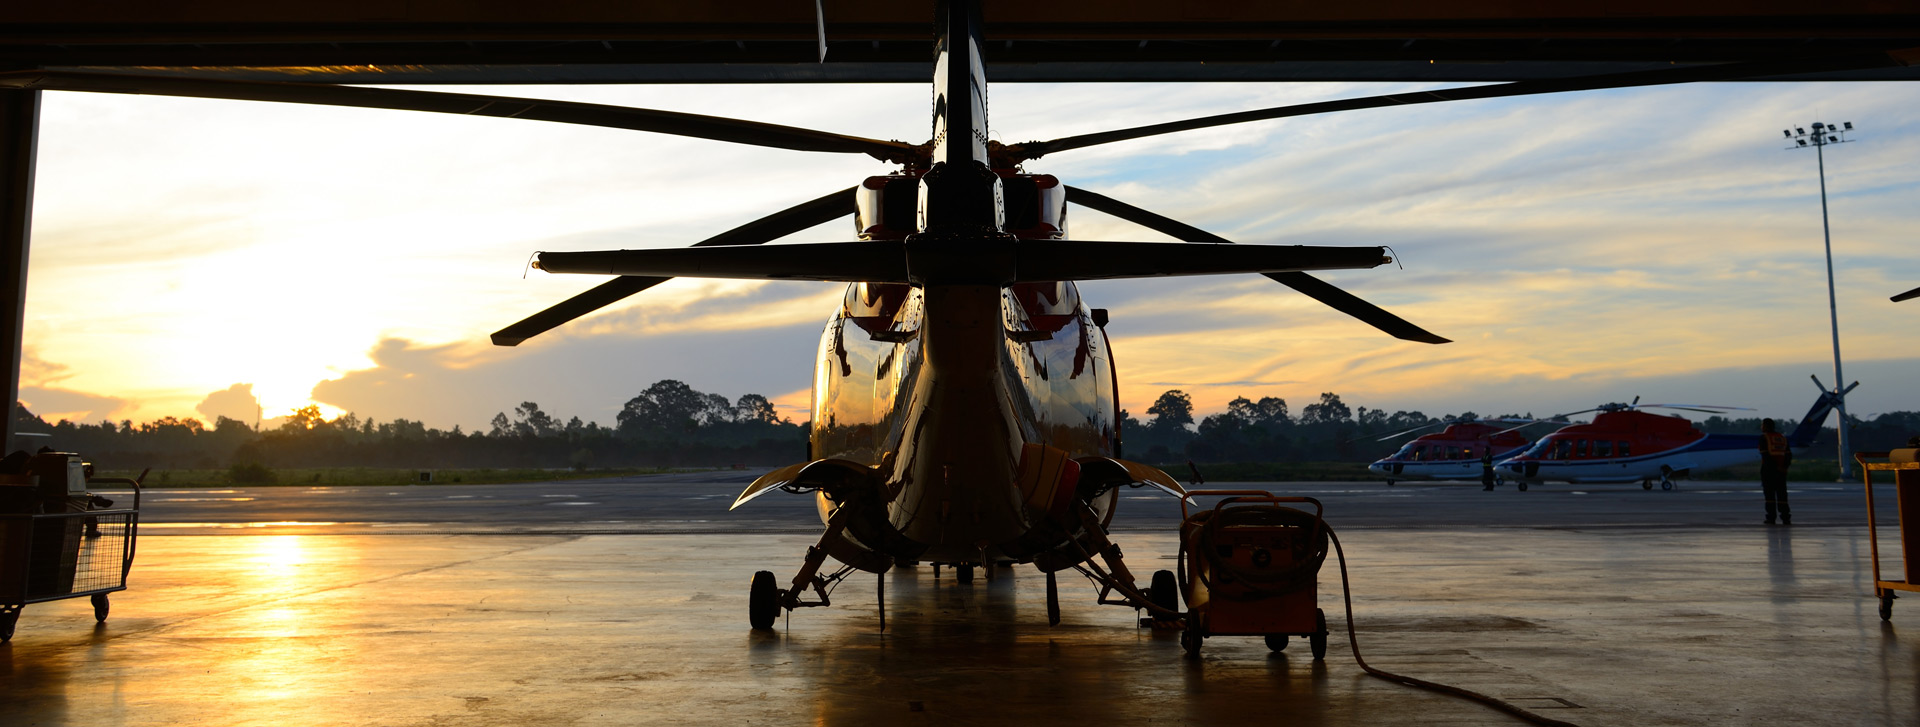 Picture of Helicopter in Hangar